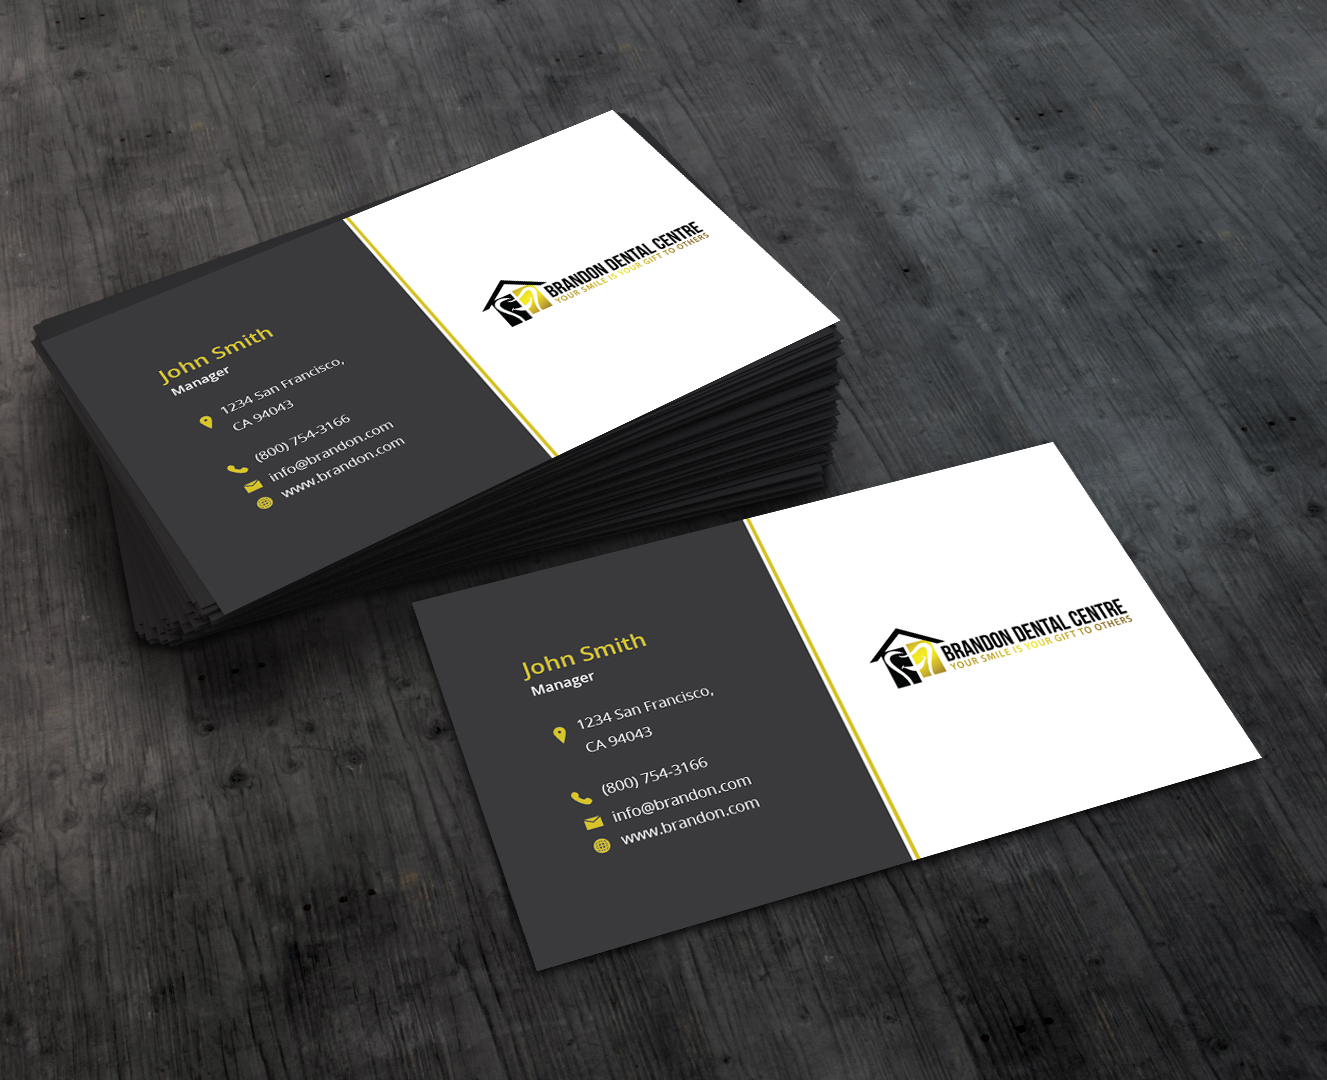 Elegant playful business business card design for a company by business card design by abyjohns for this project design 10287512 reheart Choice Image